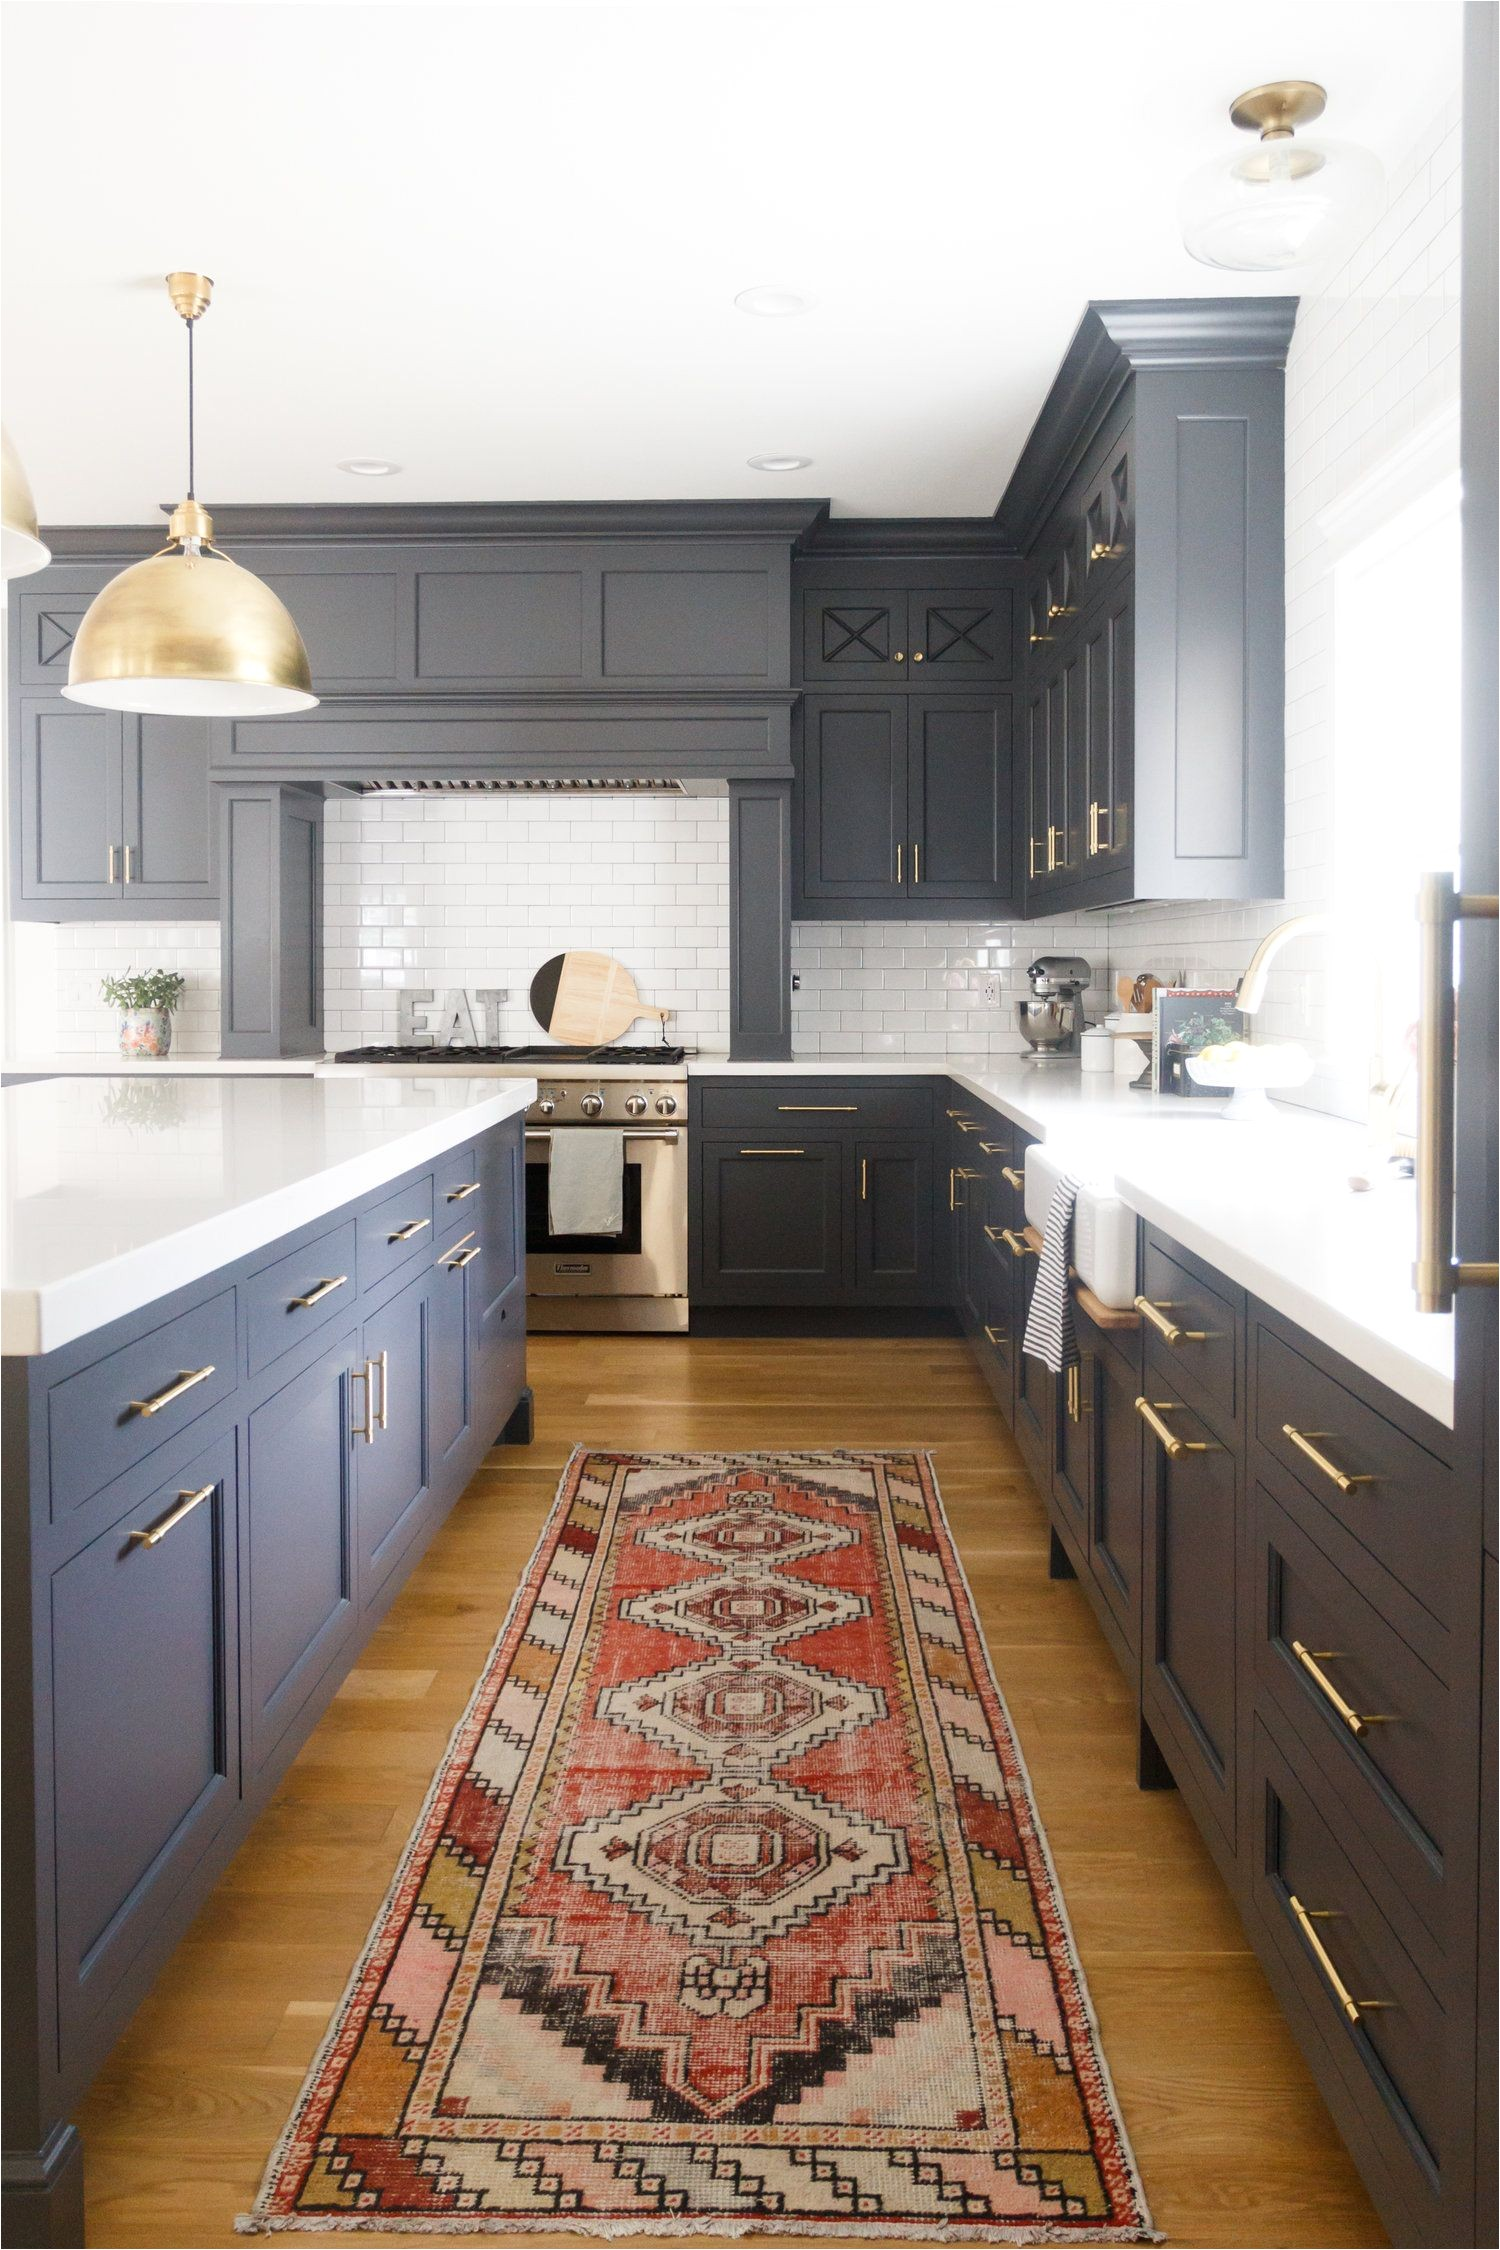 cabinet color is cheating heart by benjamin moore kitchen design by fox group